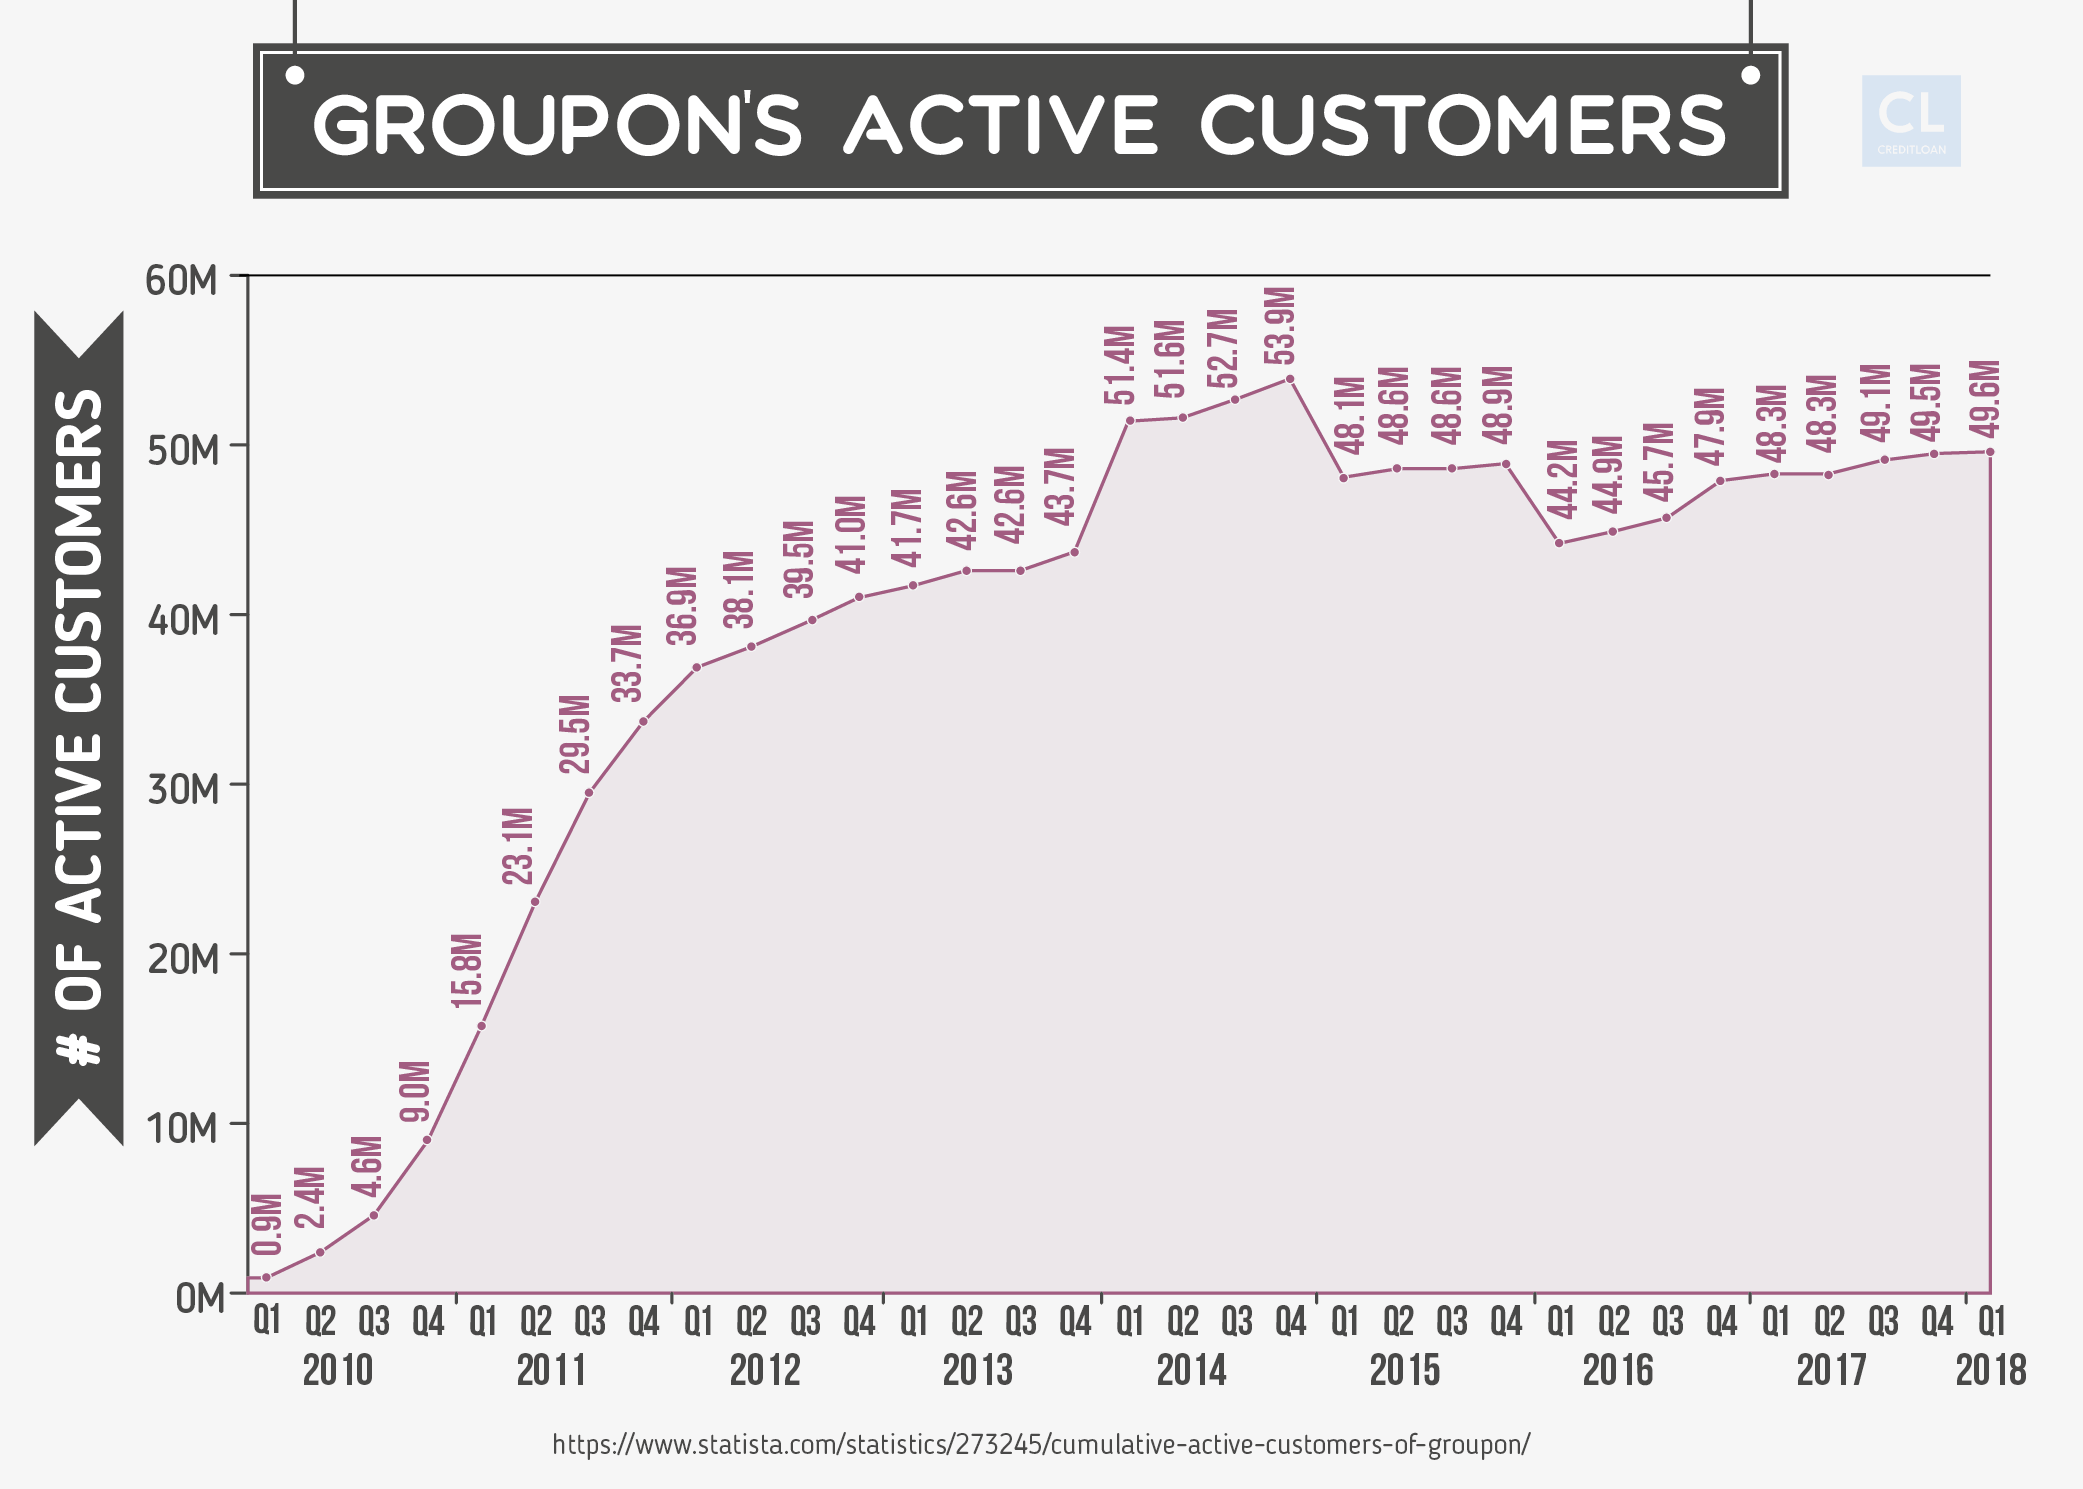 Groupon's Active Customers 2010 - 2018